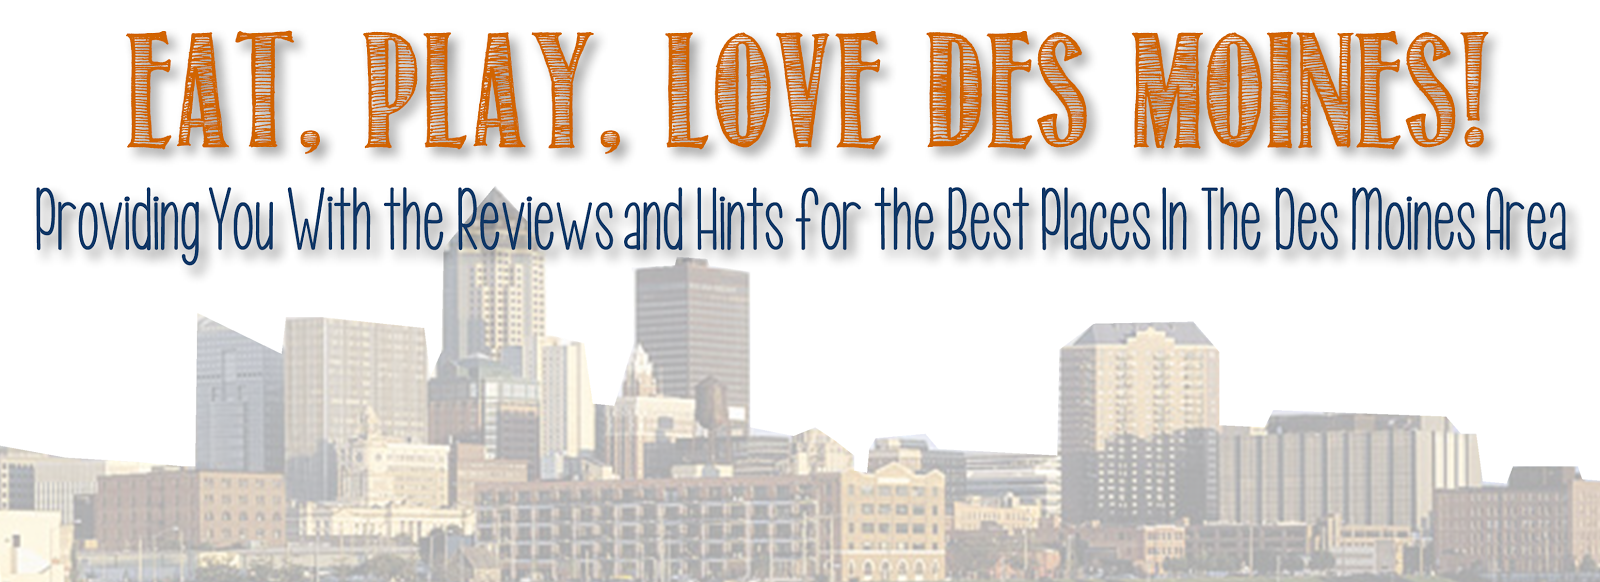 Eat Play Love Des Moines!